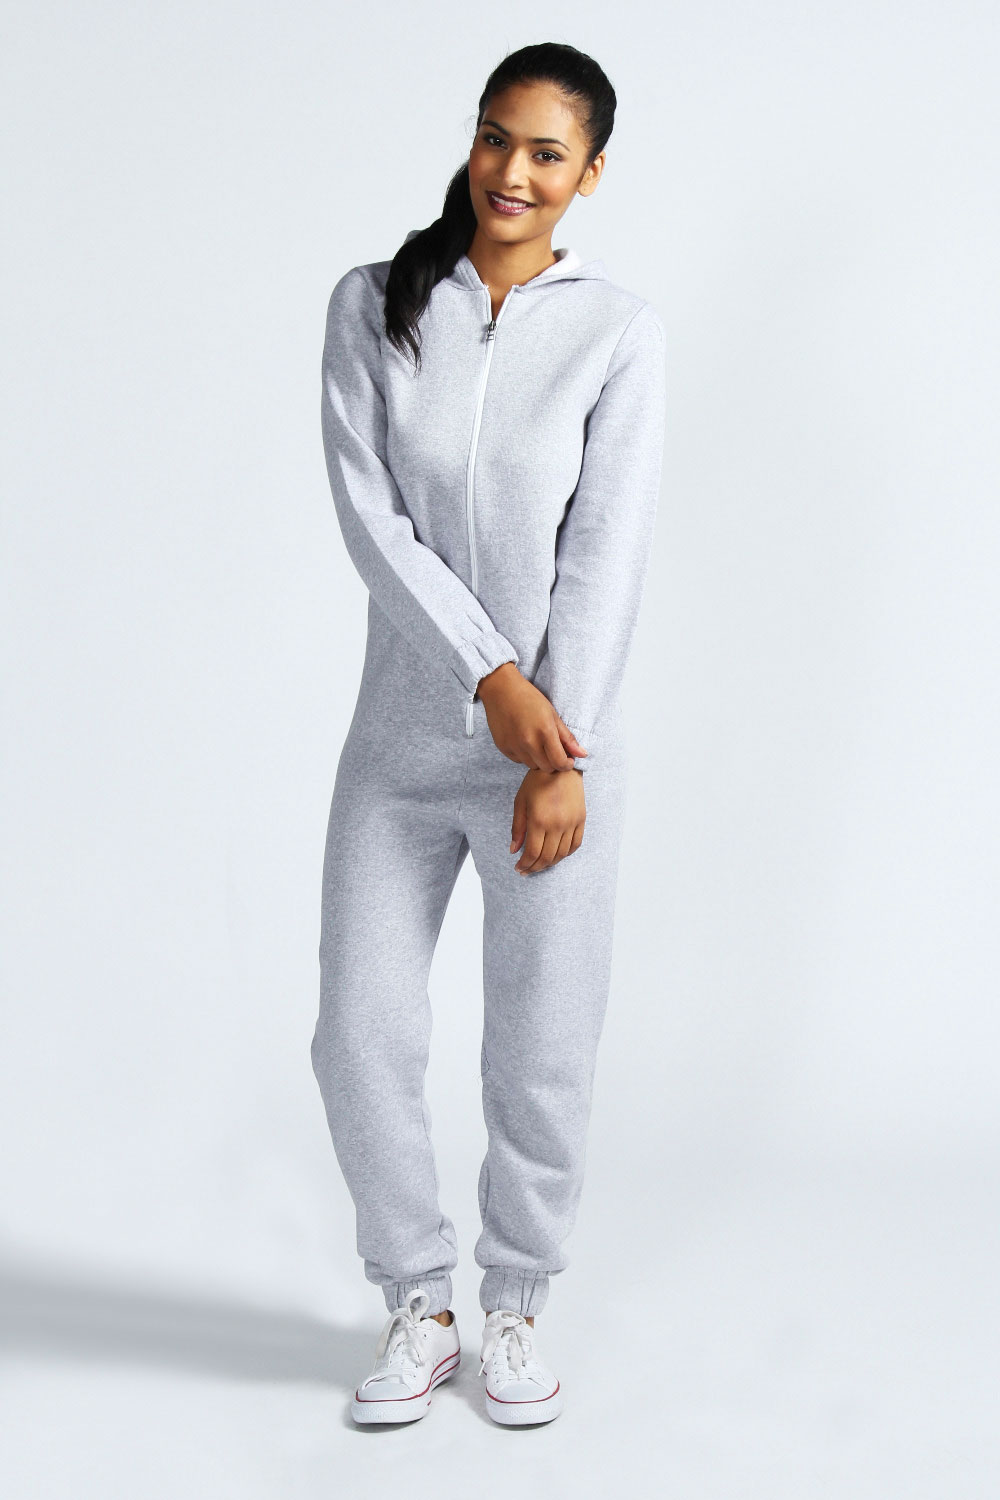 Adult Onesie Costume Pajamas. Showing 40 of results that match your query. Search Product Result. Finding Dory Adult Union Suit Costume Pajama Onesie with Hood. Product Image. Price $ Leg Avenue Women's Denier Opaque Long Sleeve Bodysuit, White, One Size. Product Image. Price $ 8. 97 - $ 9.